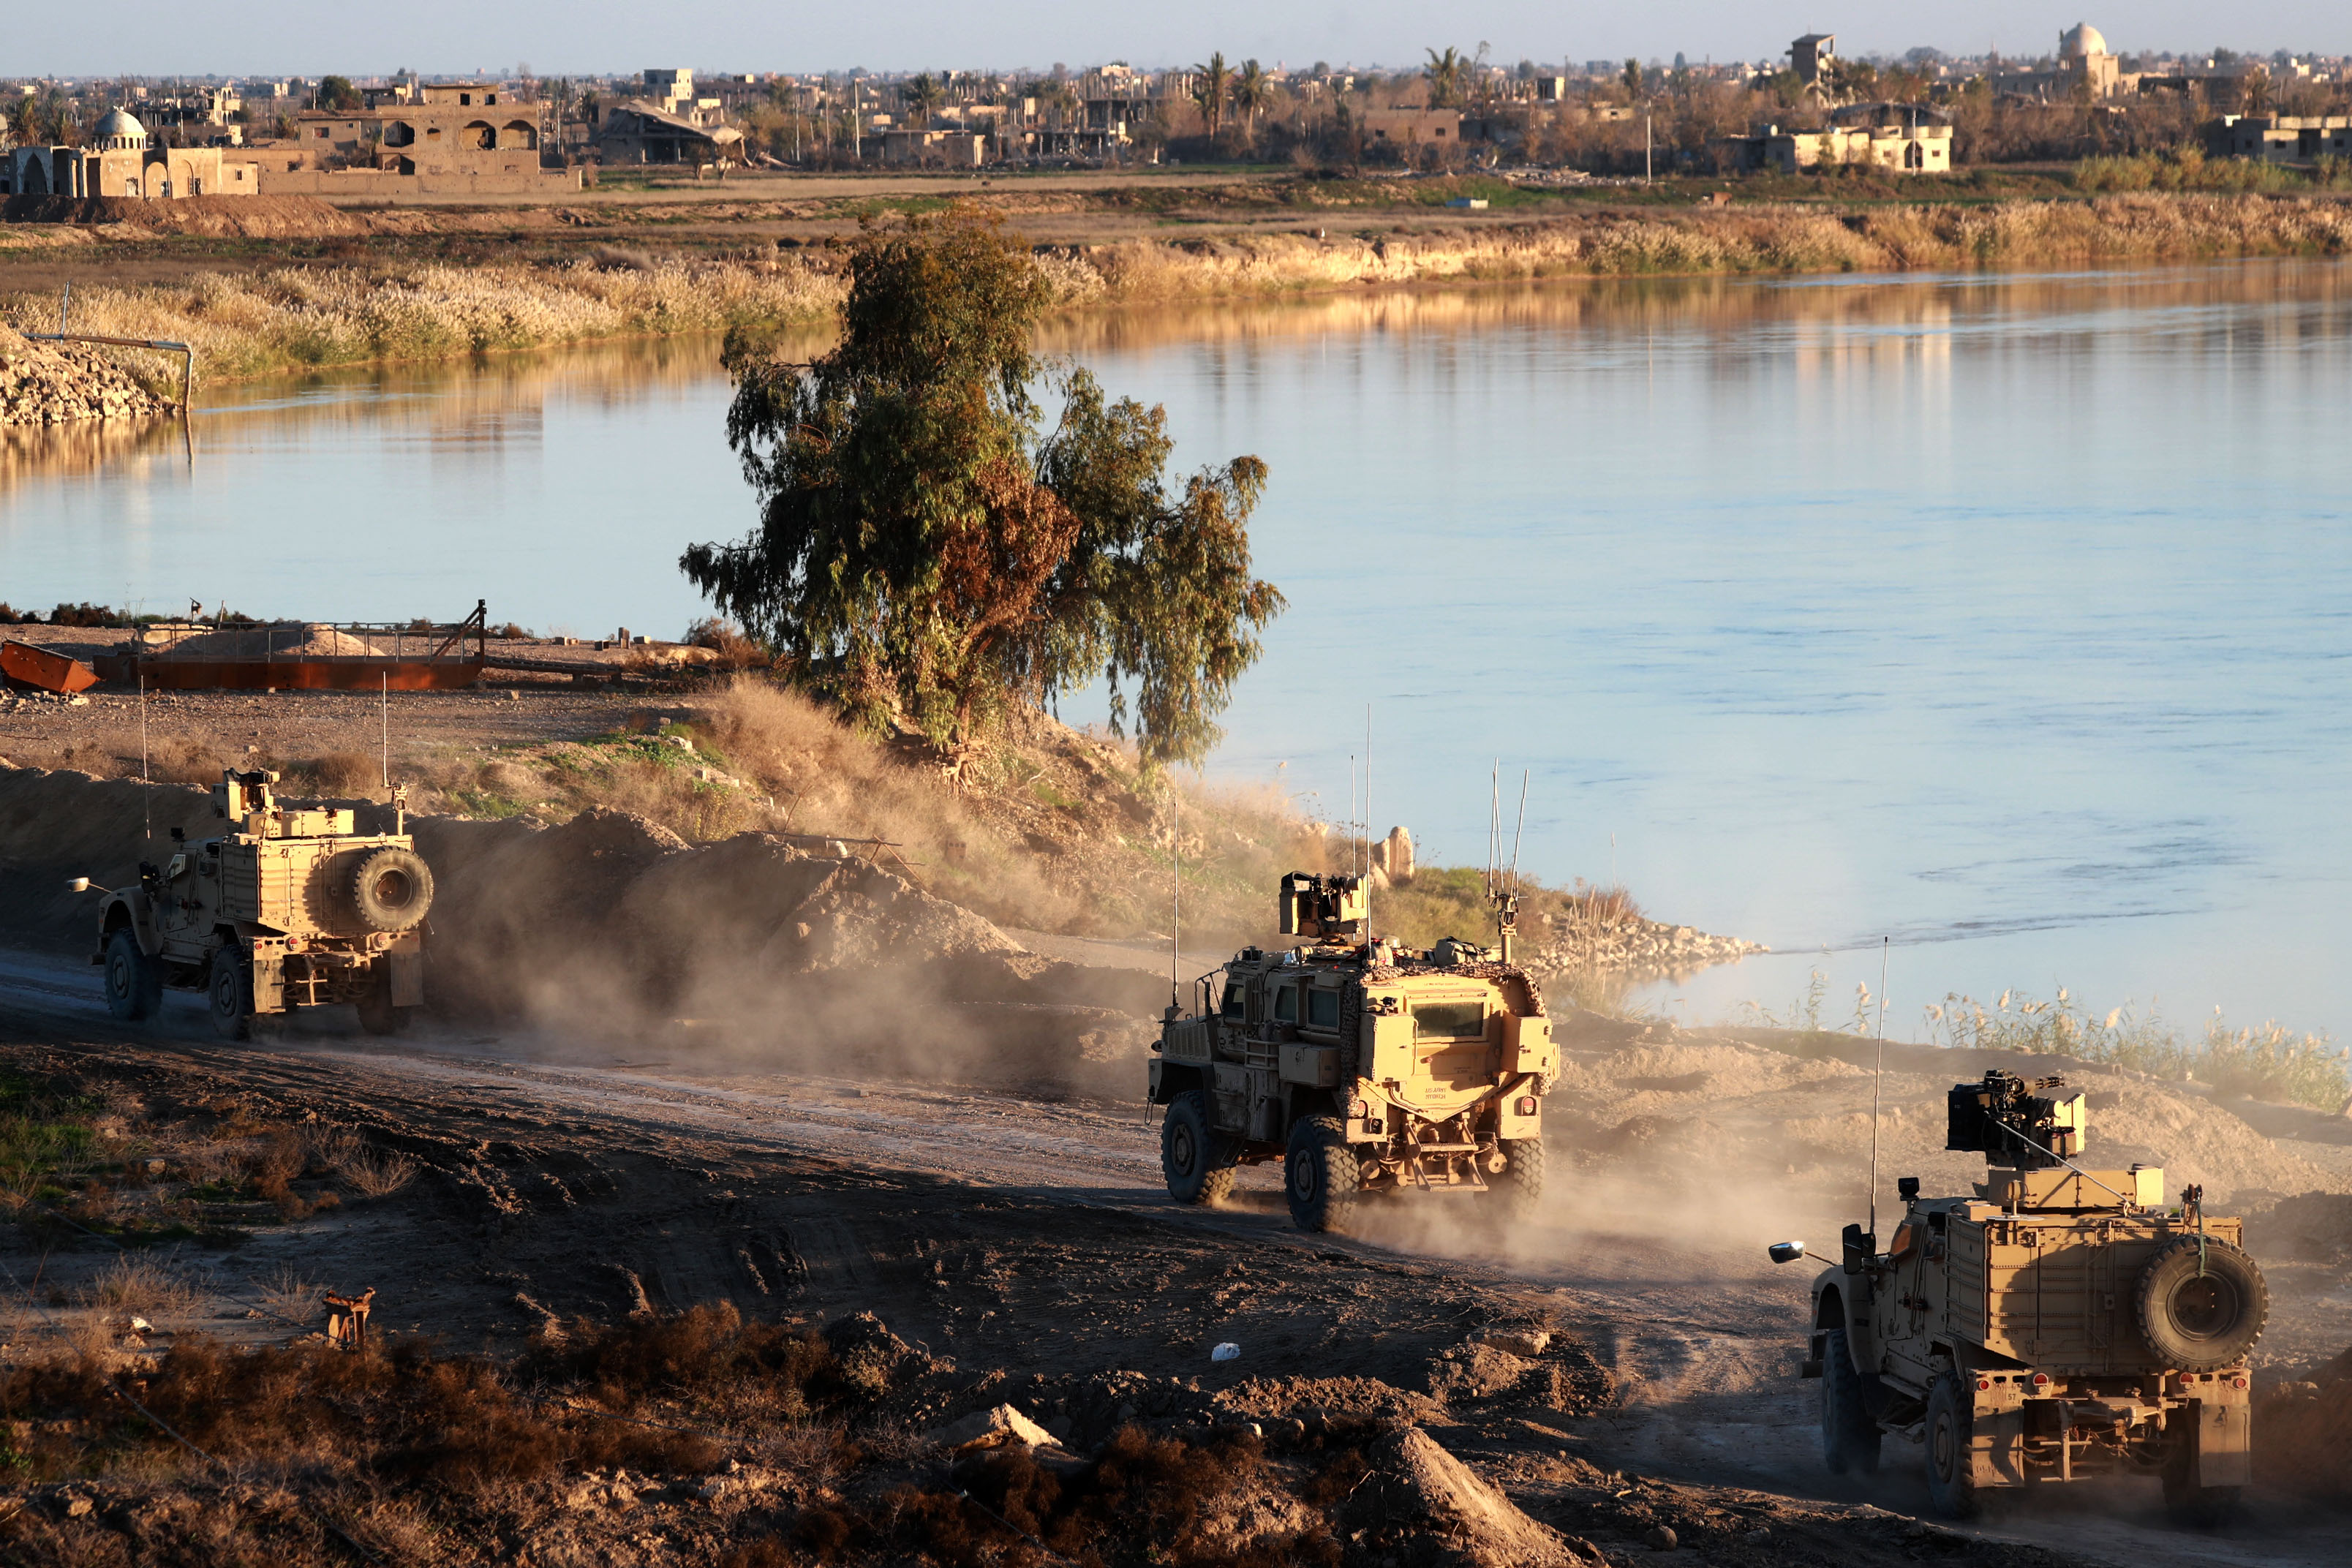 2018年12月15日正在Deir ez-Zor為SDF提供支持的美國部隊。 (DELIL SOULEIMAN/AFP/Getty Images)